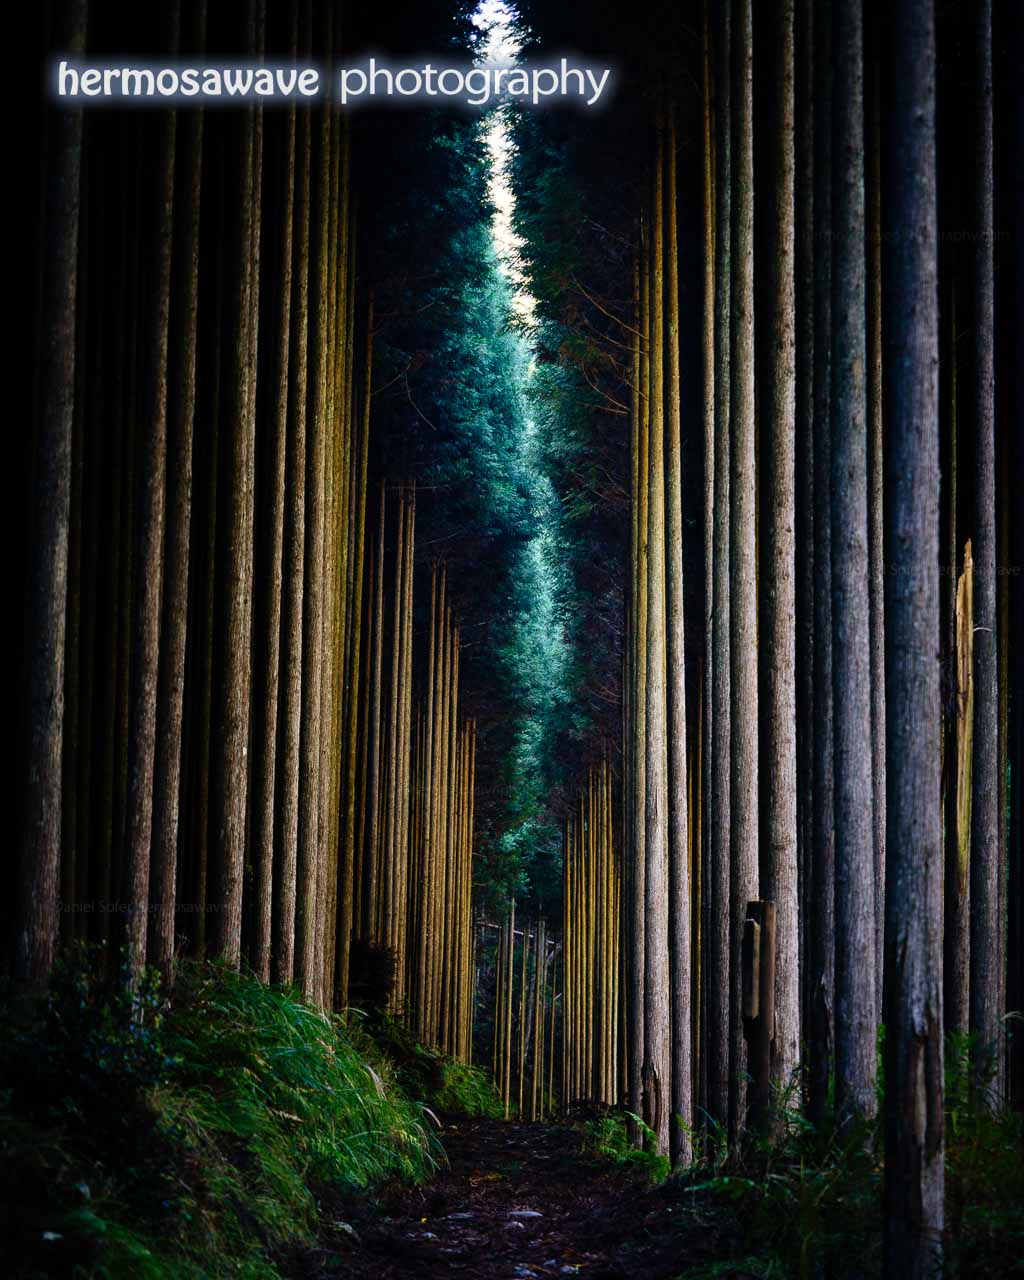 Japanese Cedars in the Forest